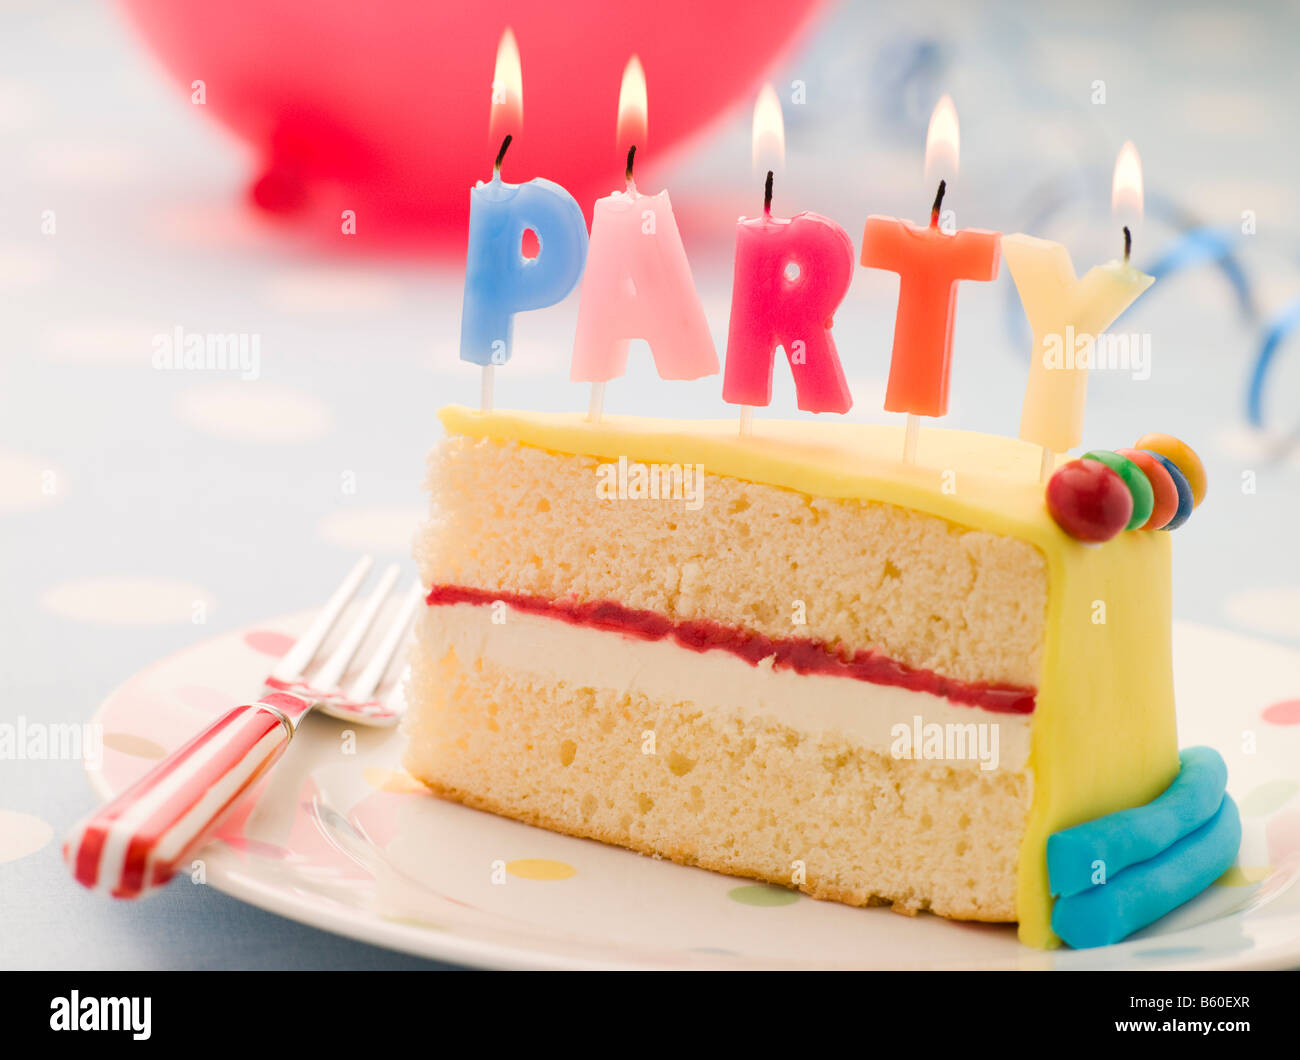 Party Candles On A Slice Of Birthday Cake Stock Photo 20910031 Alamy